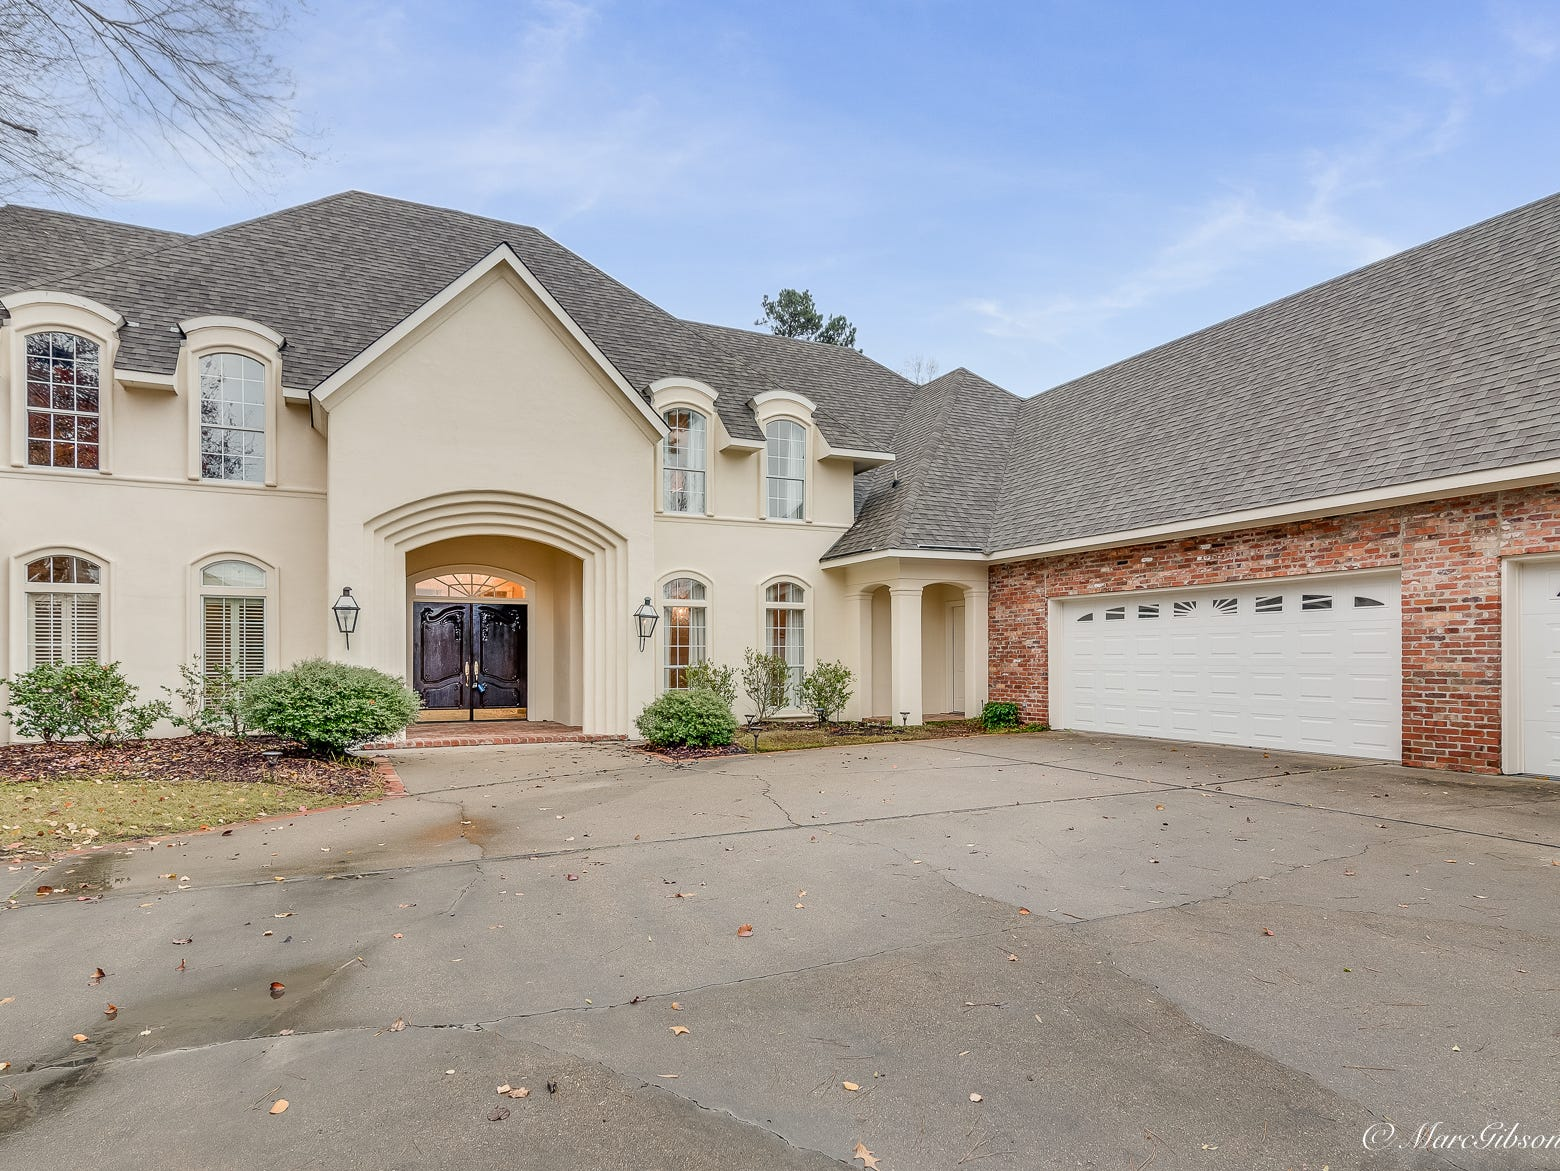 10955 Longfellow Trace, Shreveport  Price: $549,500  Details: 4 bedrooms, 3.5 bathrooms, 4,703 square feet  Special features: Southern Trace stunner with breathtaking views of 5th hole, move-in ready.   Contact: Denise Evans, 218-0001